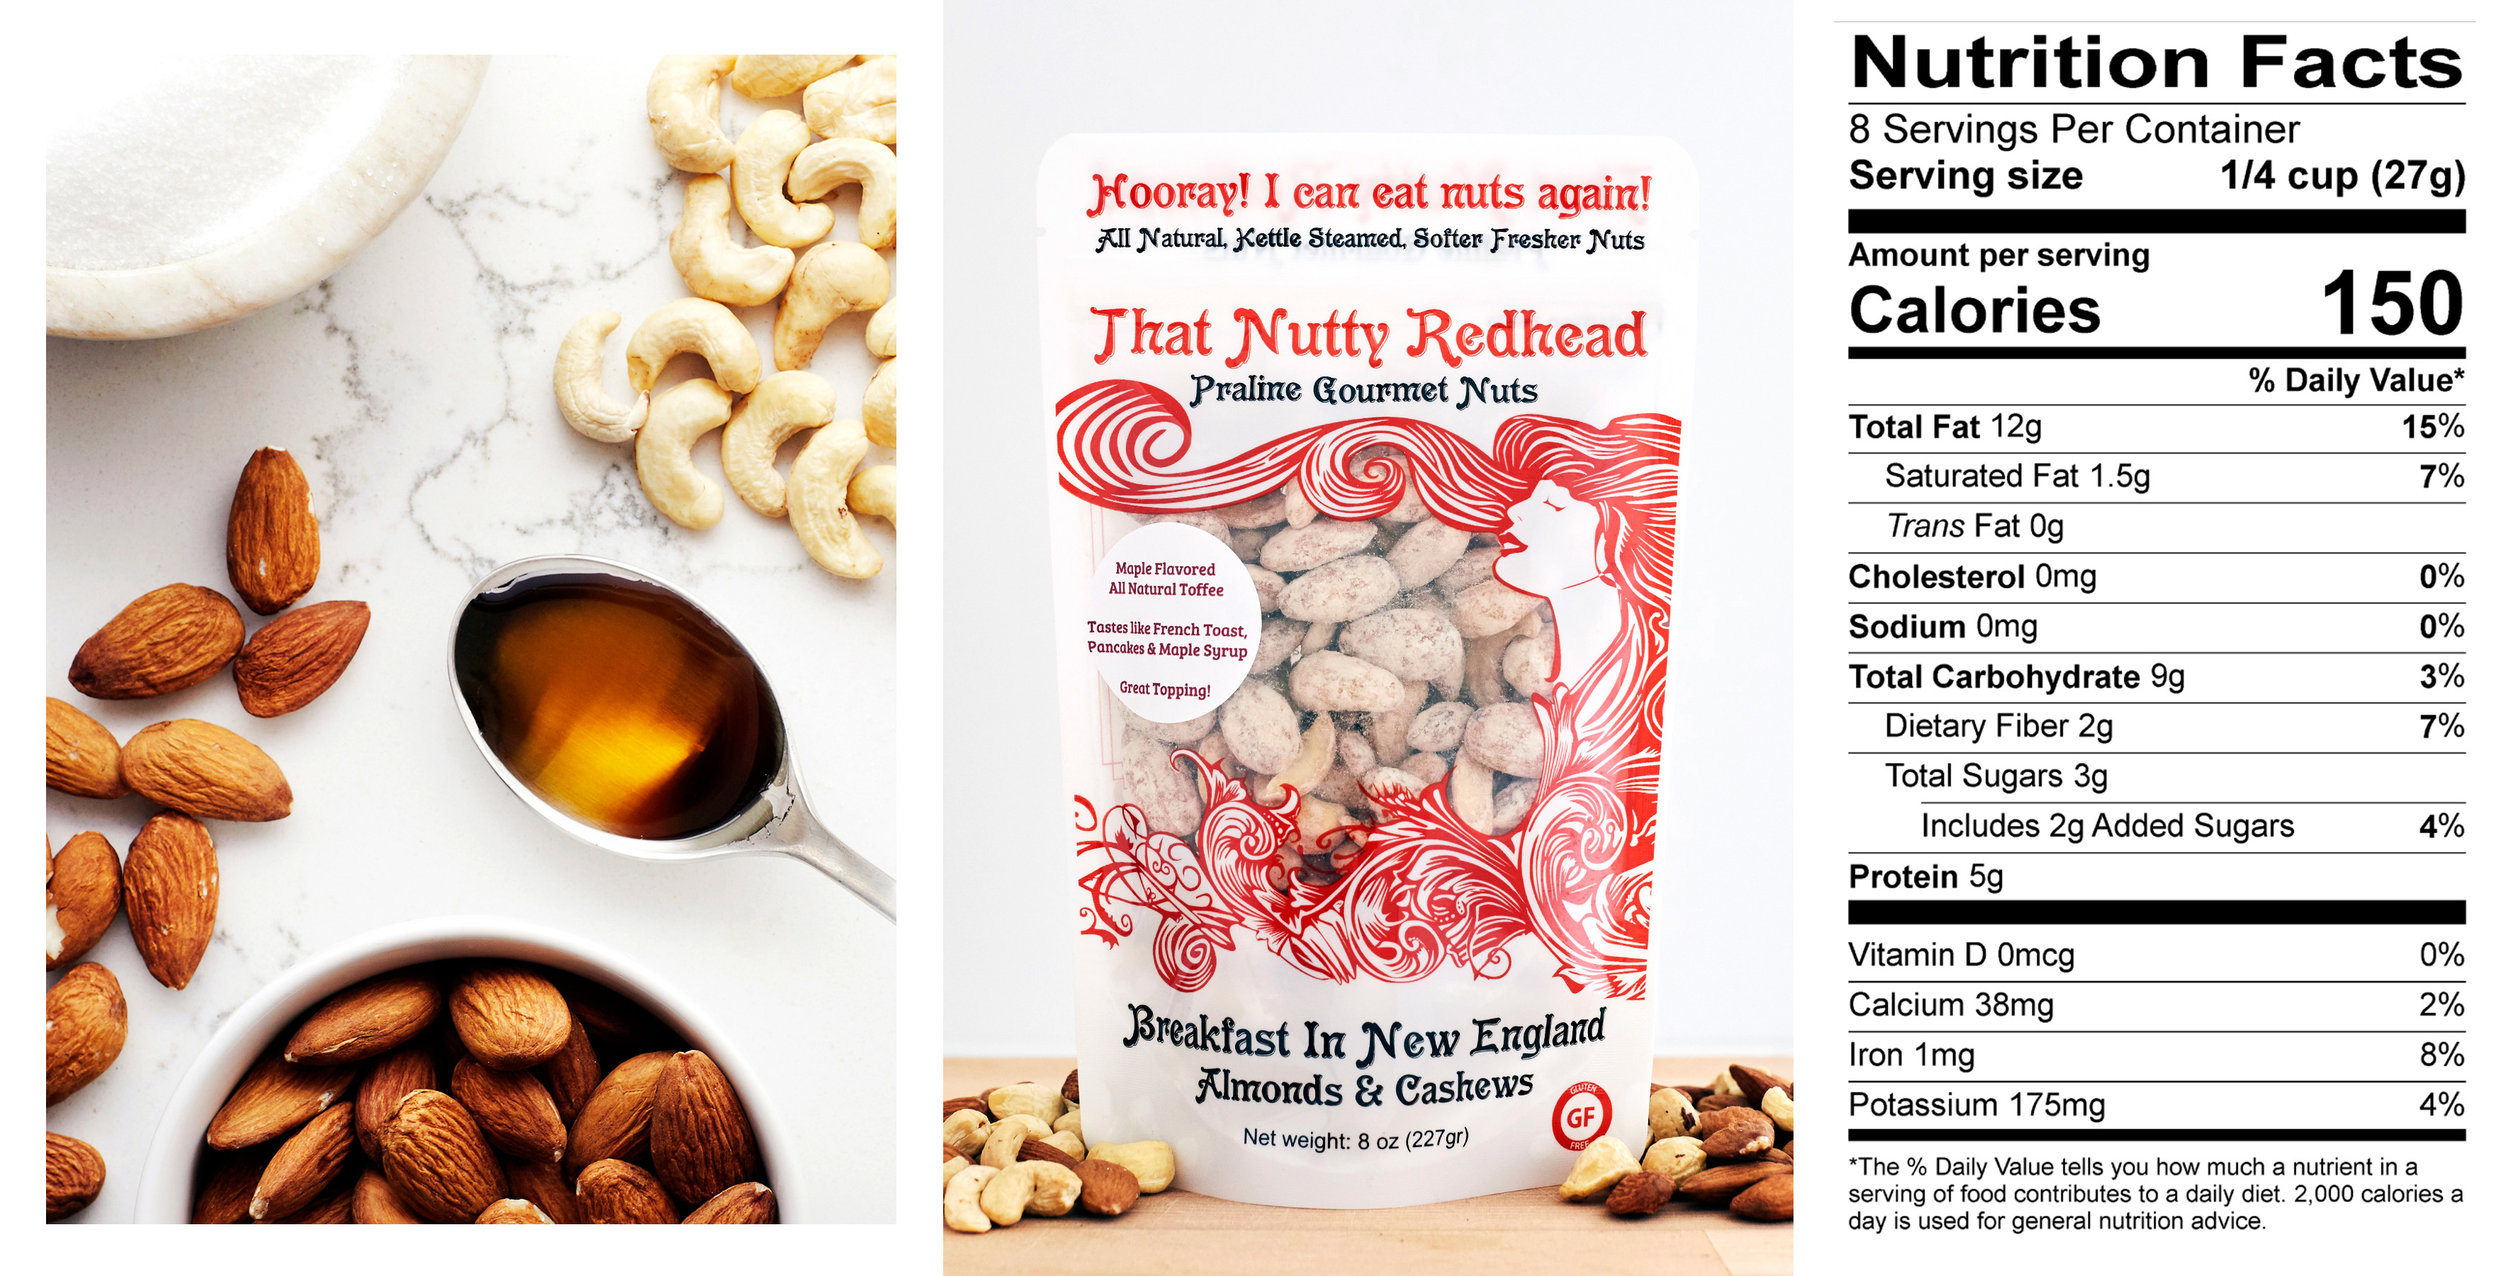 Ingredients - Almonds, Cashews, Pure Cane Sugar, Natural Toffee